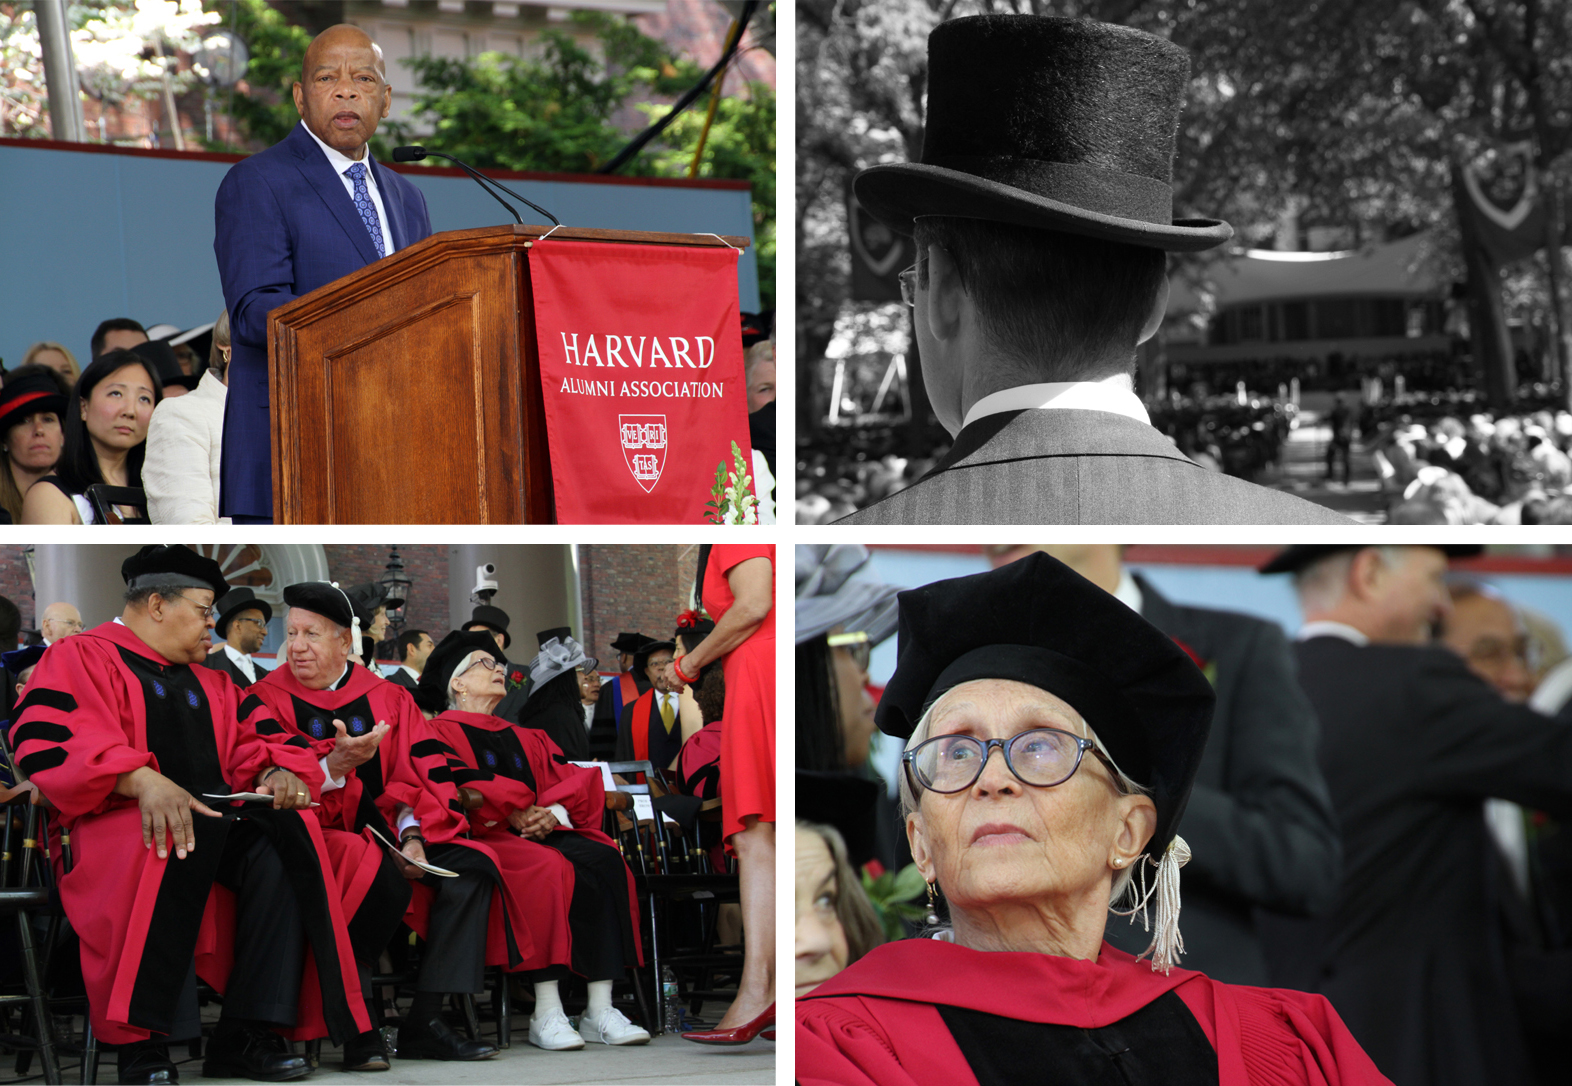 Harvard Commencement 2018